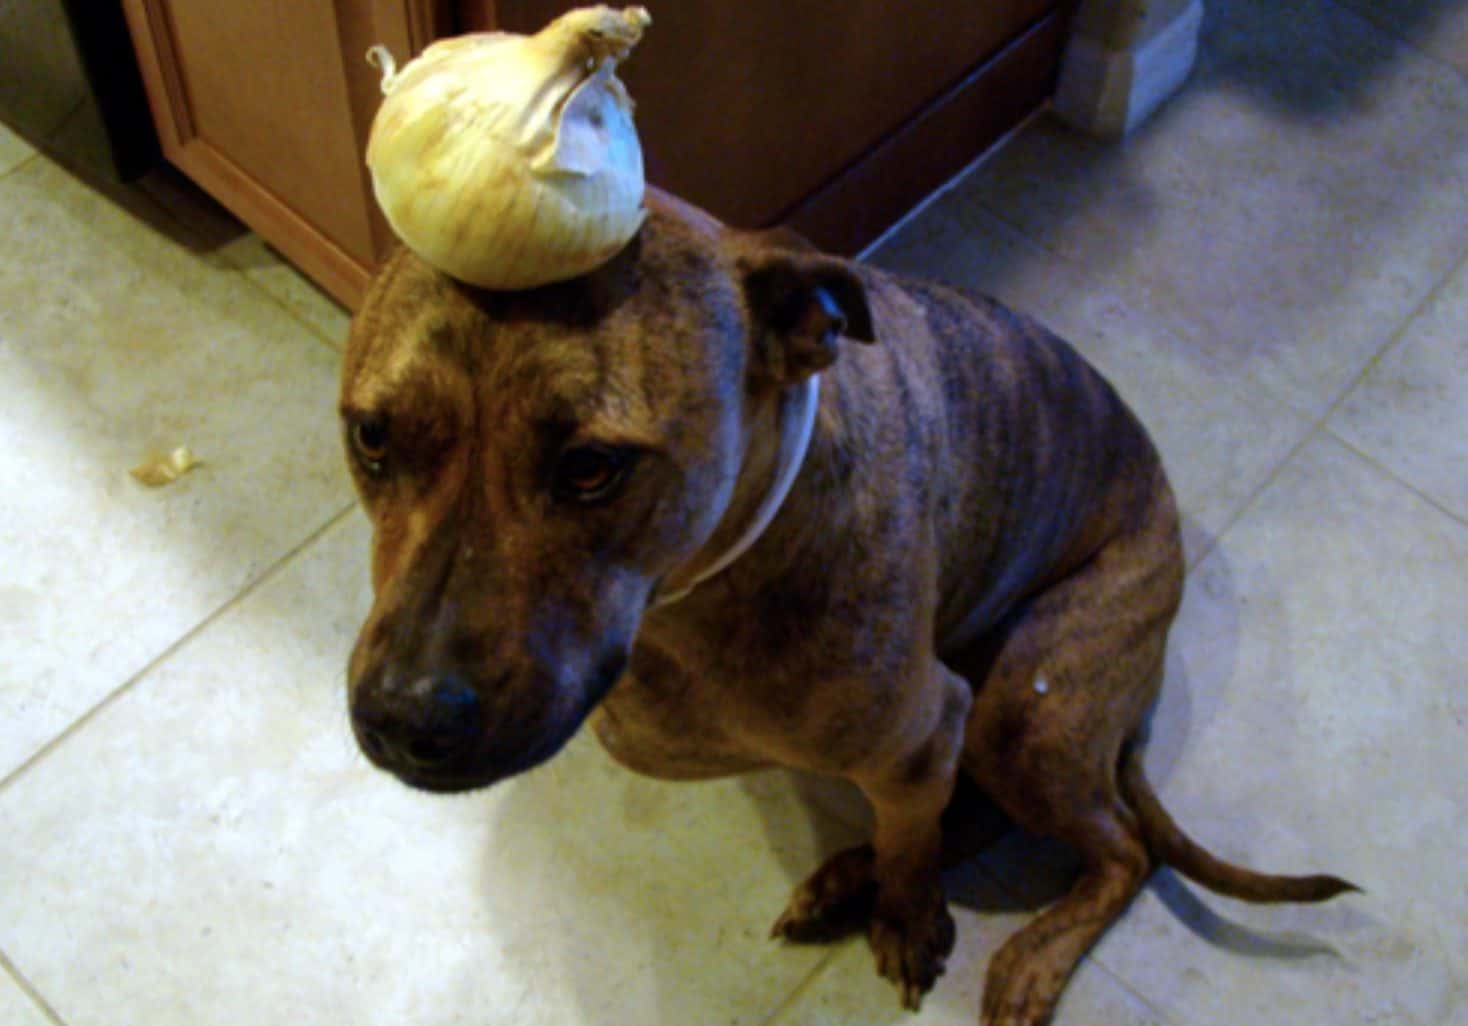 Can dogs eat onions? No they cannot eat onions because the vegetable contains a toxin harmful to dogs.